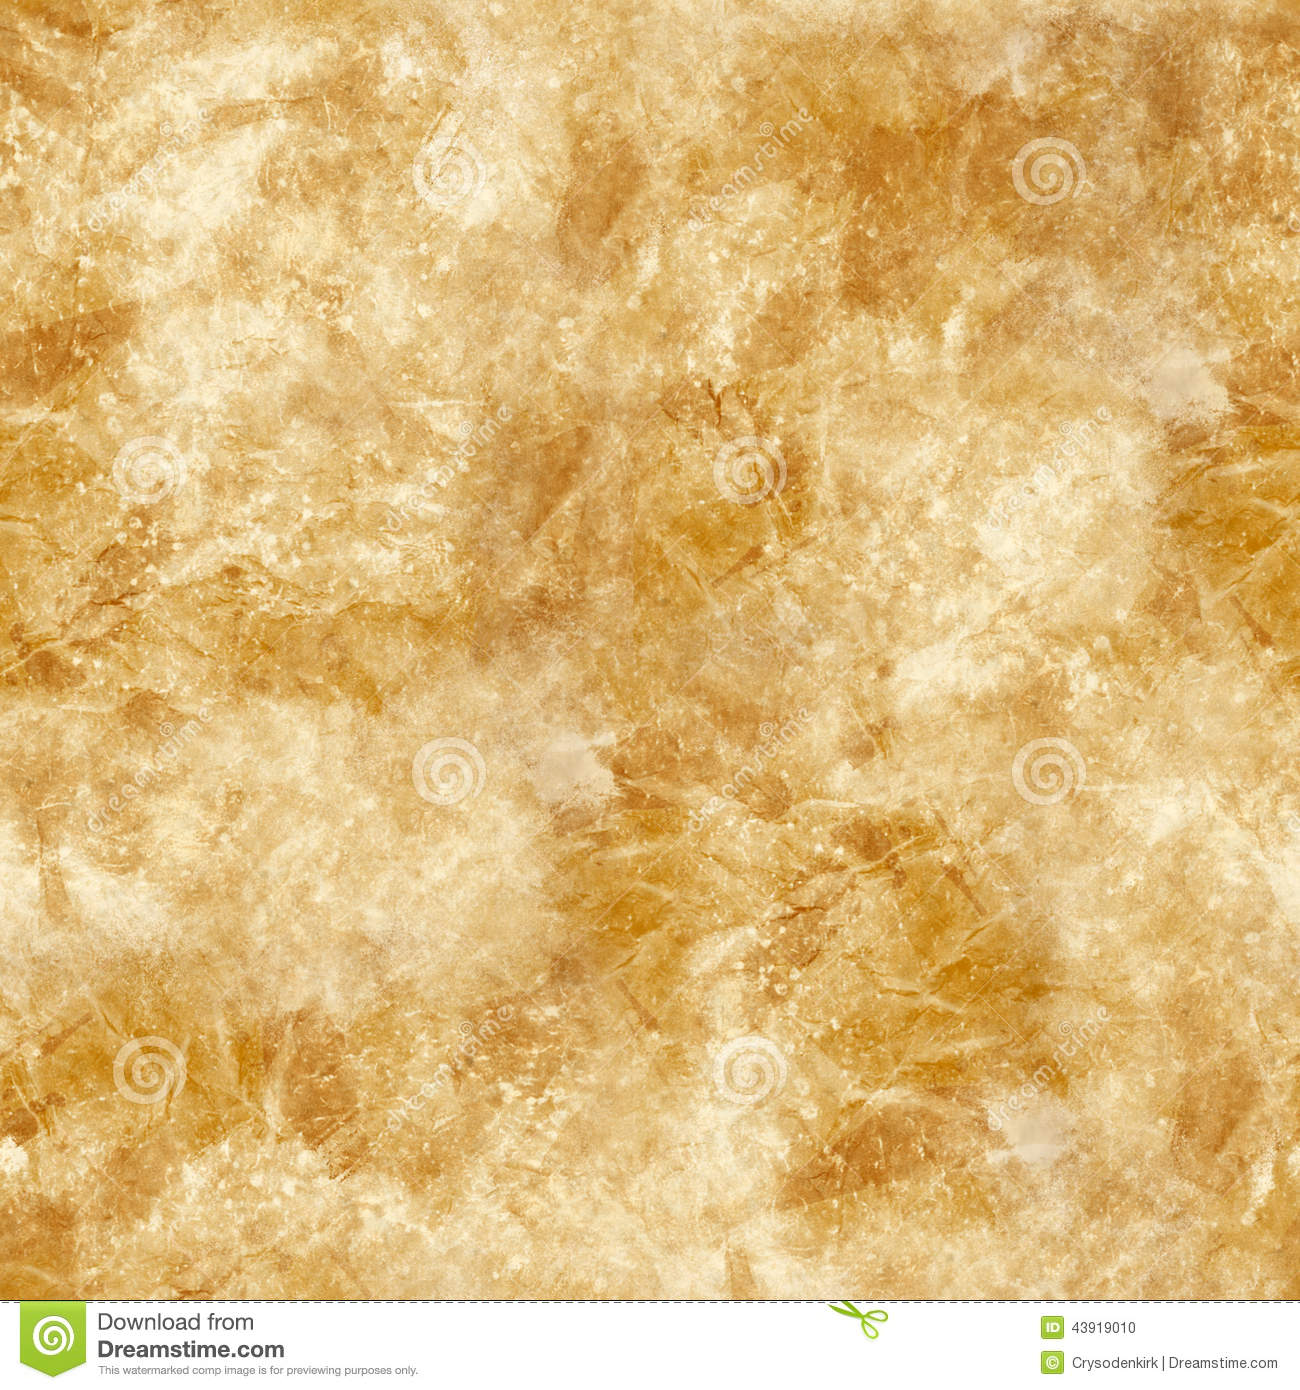 Parchment or Stone Background